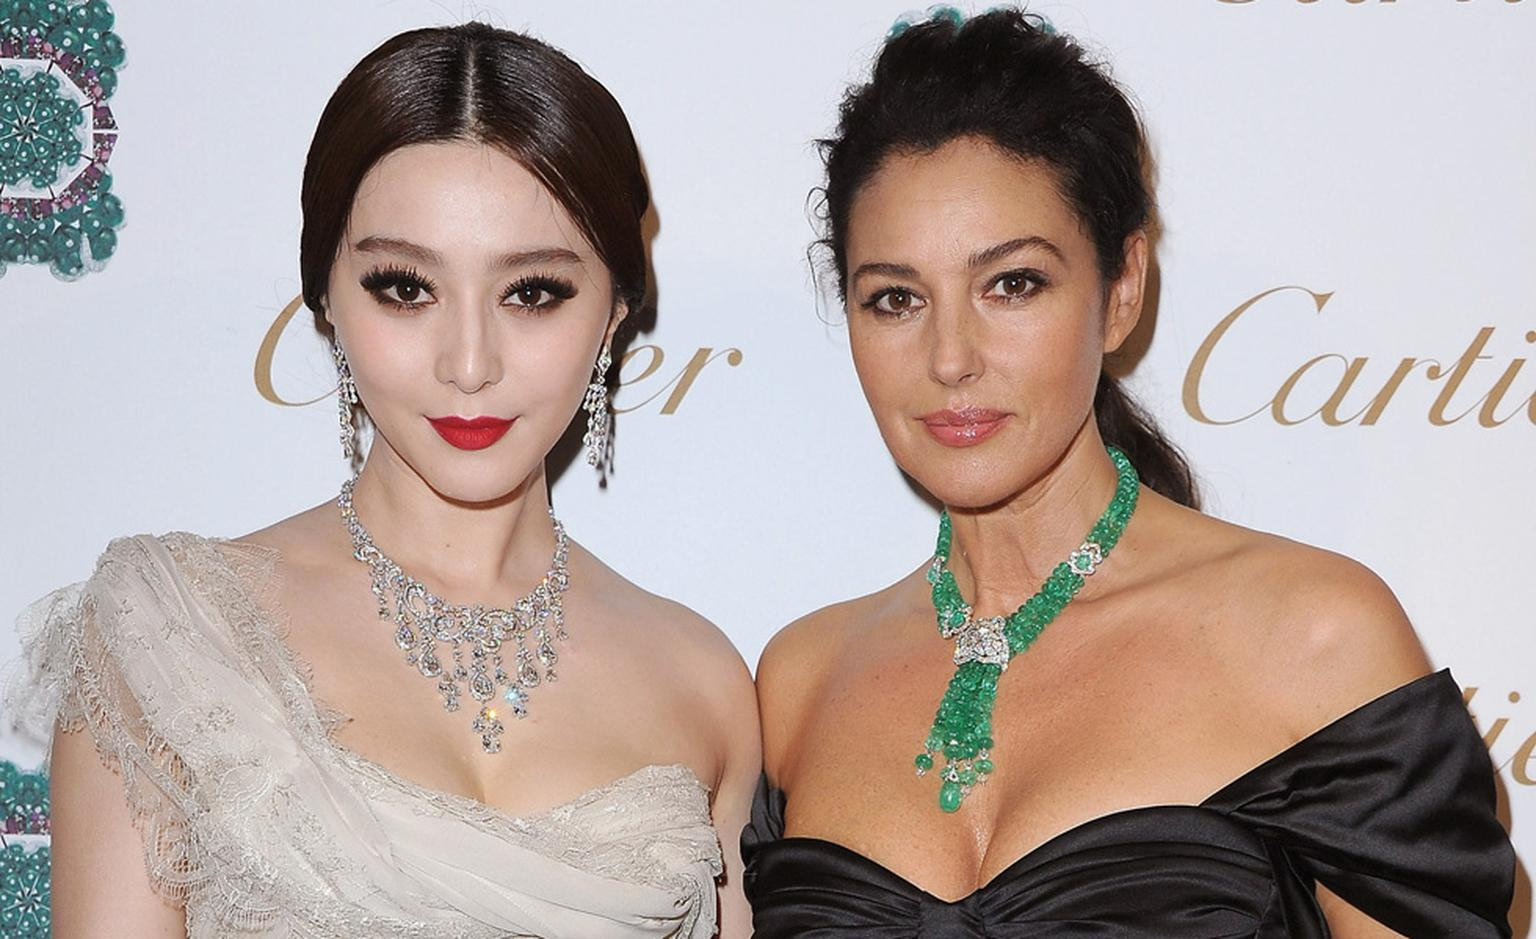 Fan BingBing and Monica Belluci at Cartier's opulent launch party of the new high jewellery collection Sortilège, l'enchantment des pierres.